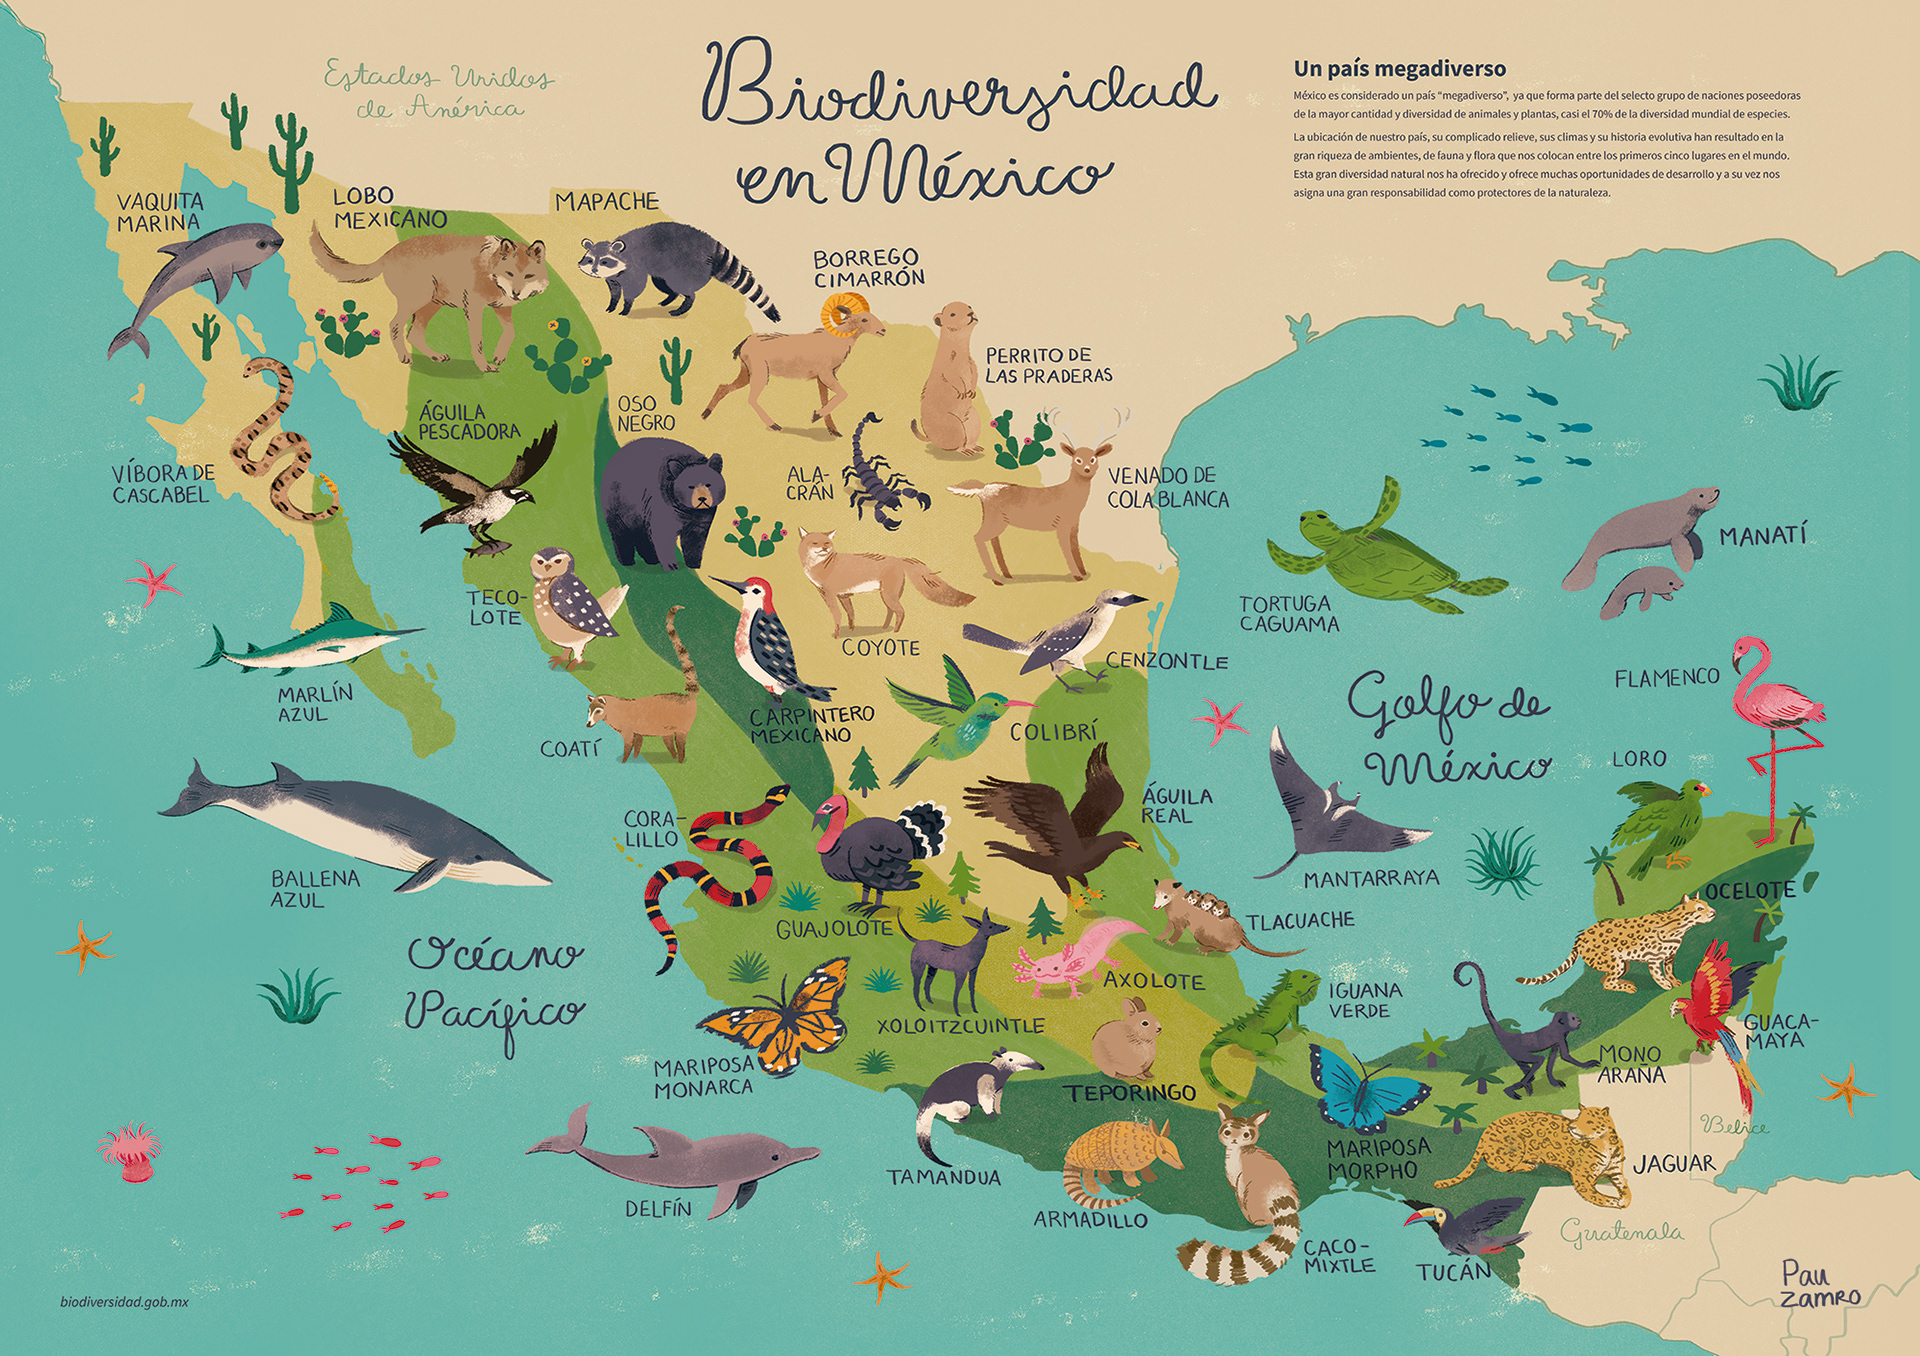 Wildlife of Mexico map. Educational illustration / Mapa de biodiversidad en México. Ilustración didáctica. 2019